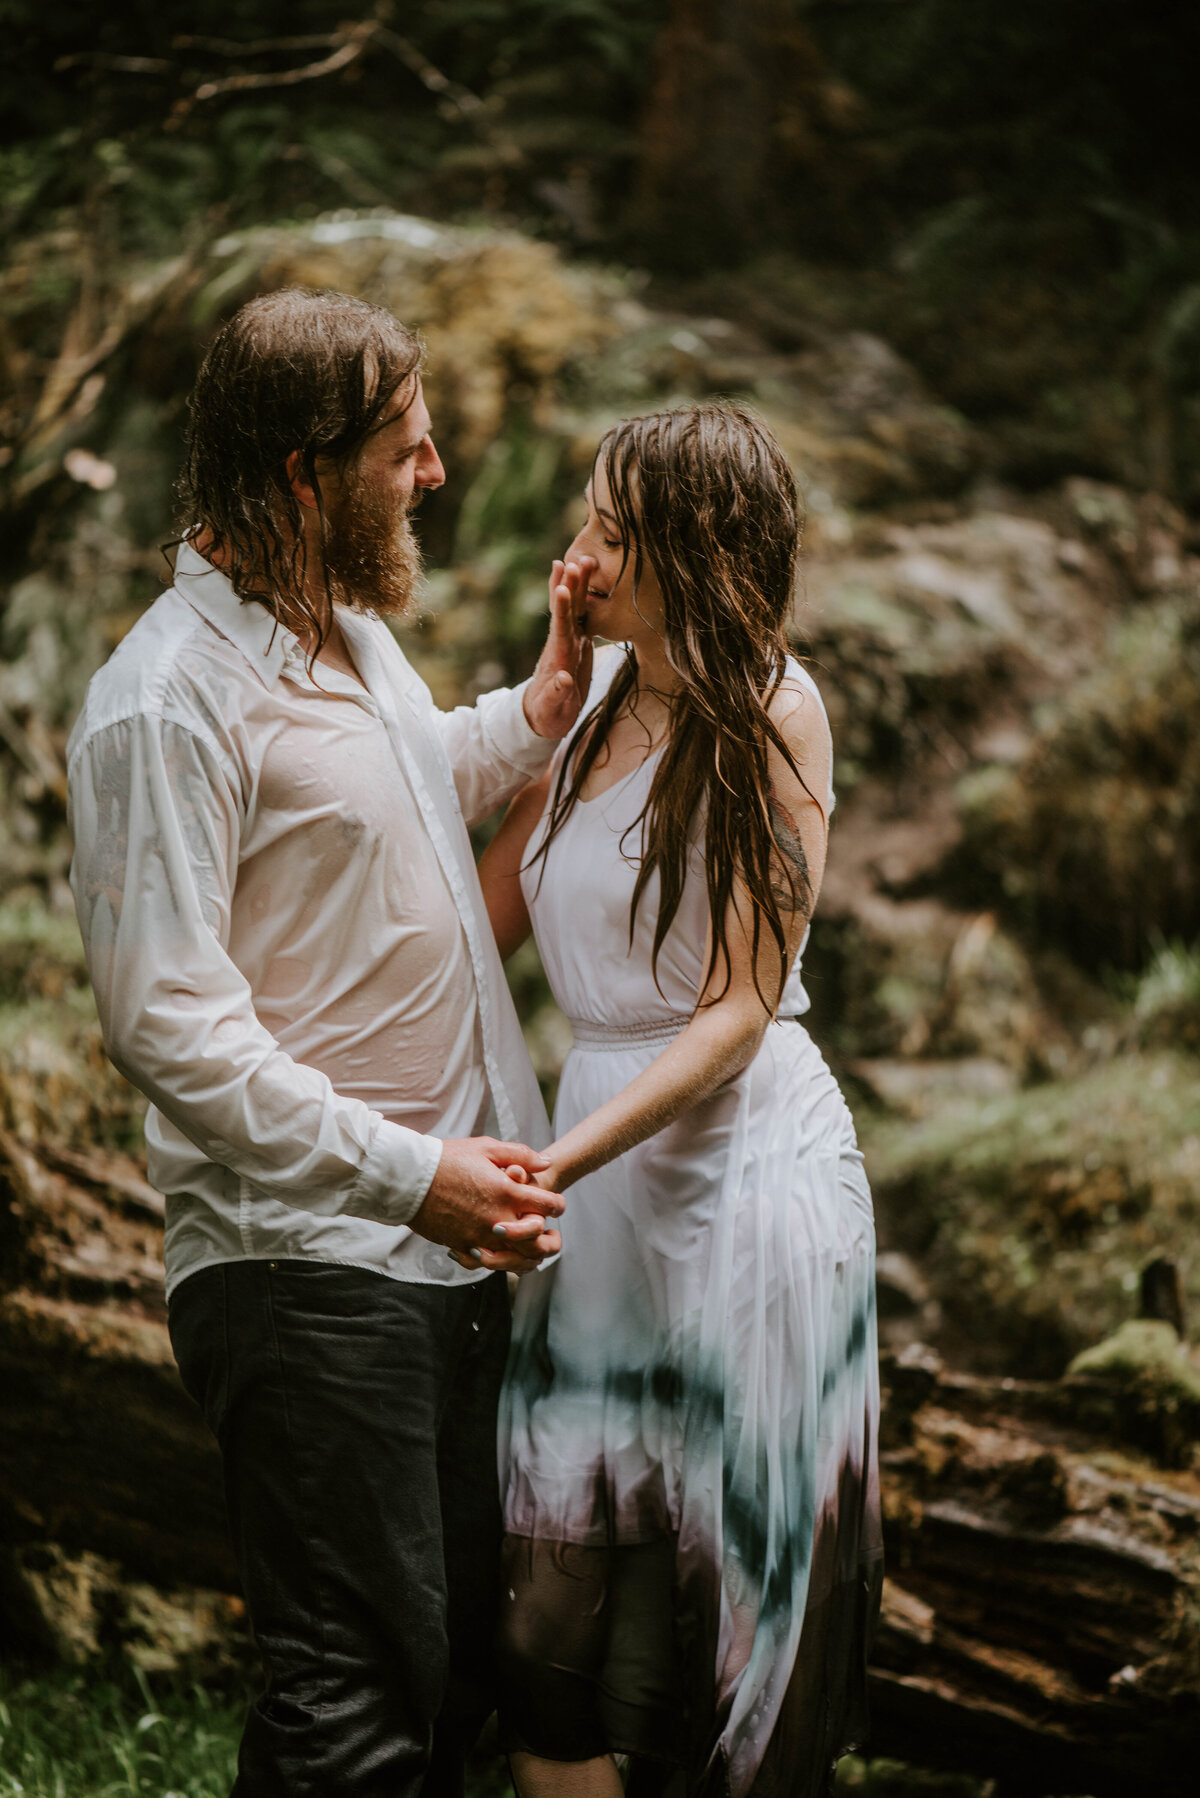 sahalie-falls-summer-oregon-photoshoot-adventure-photographer-bend-couple-forest-outfits-elopement-wedding8641